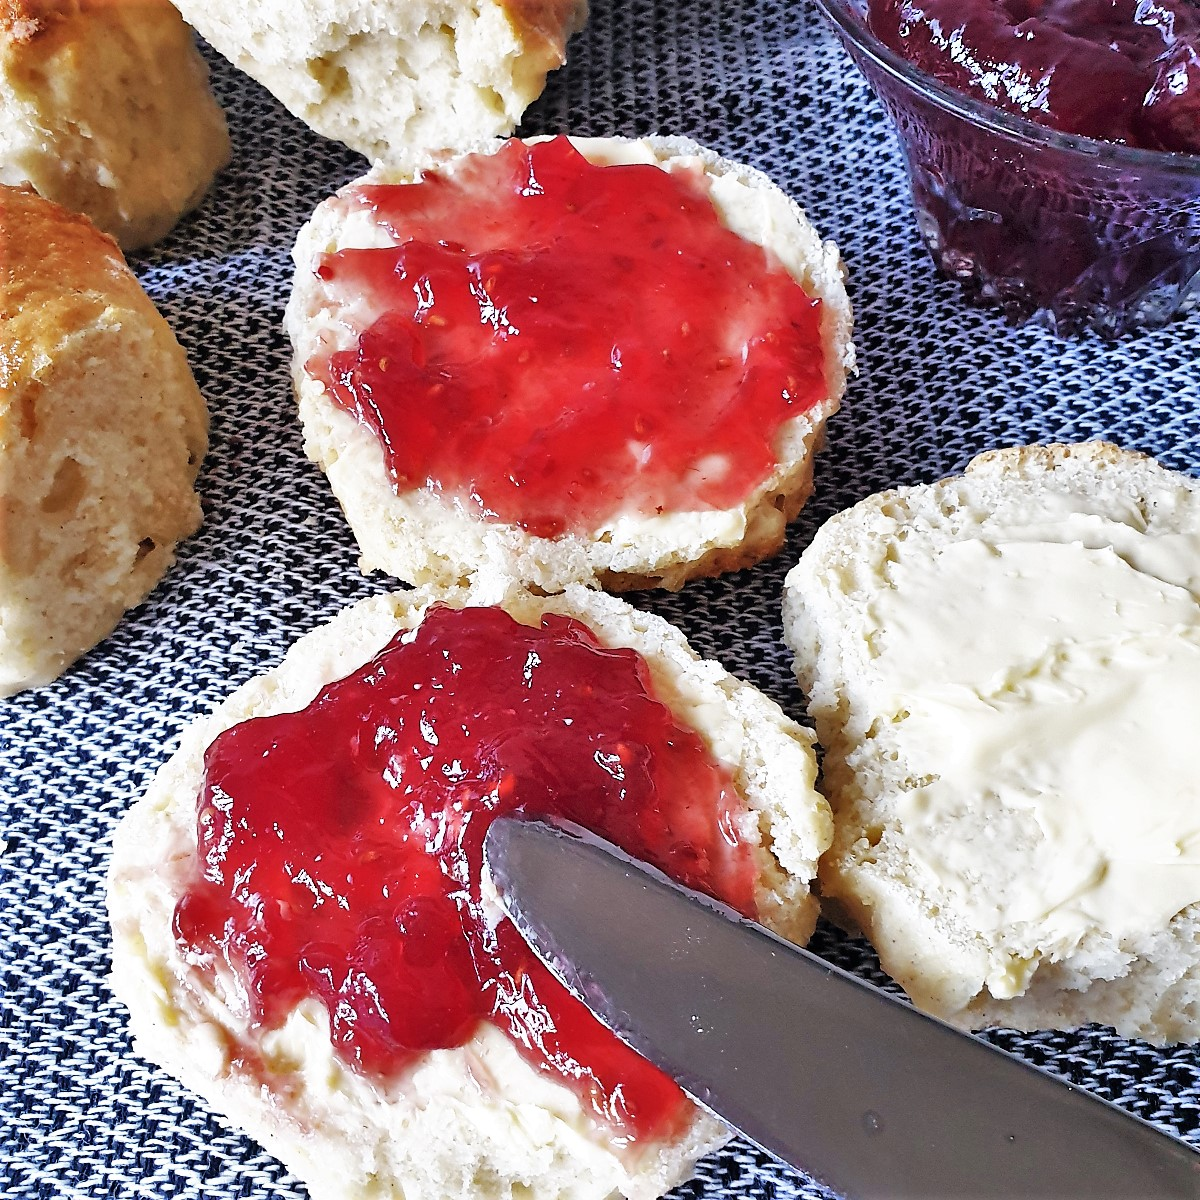 A scone being spread with jam.